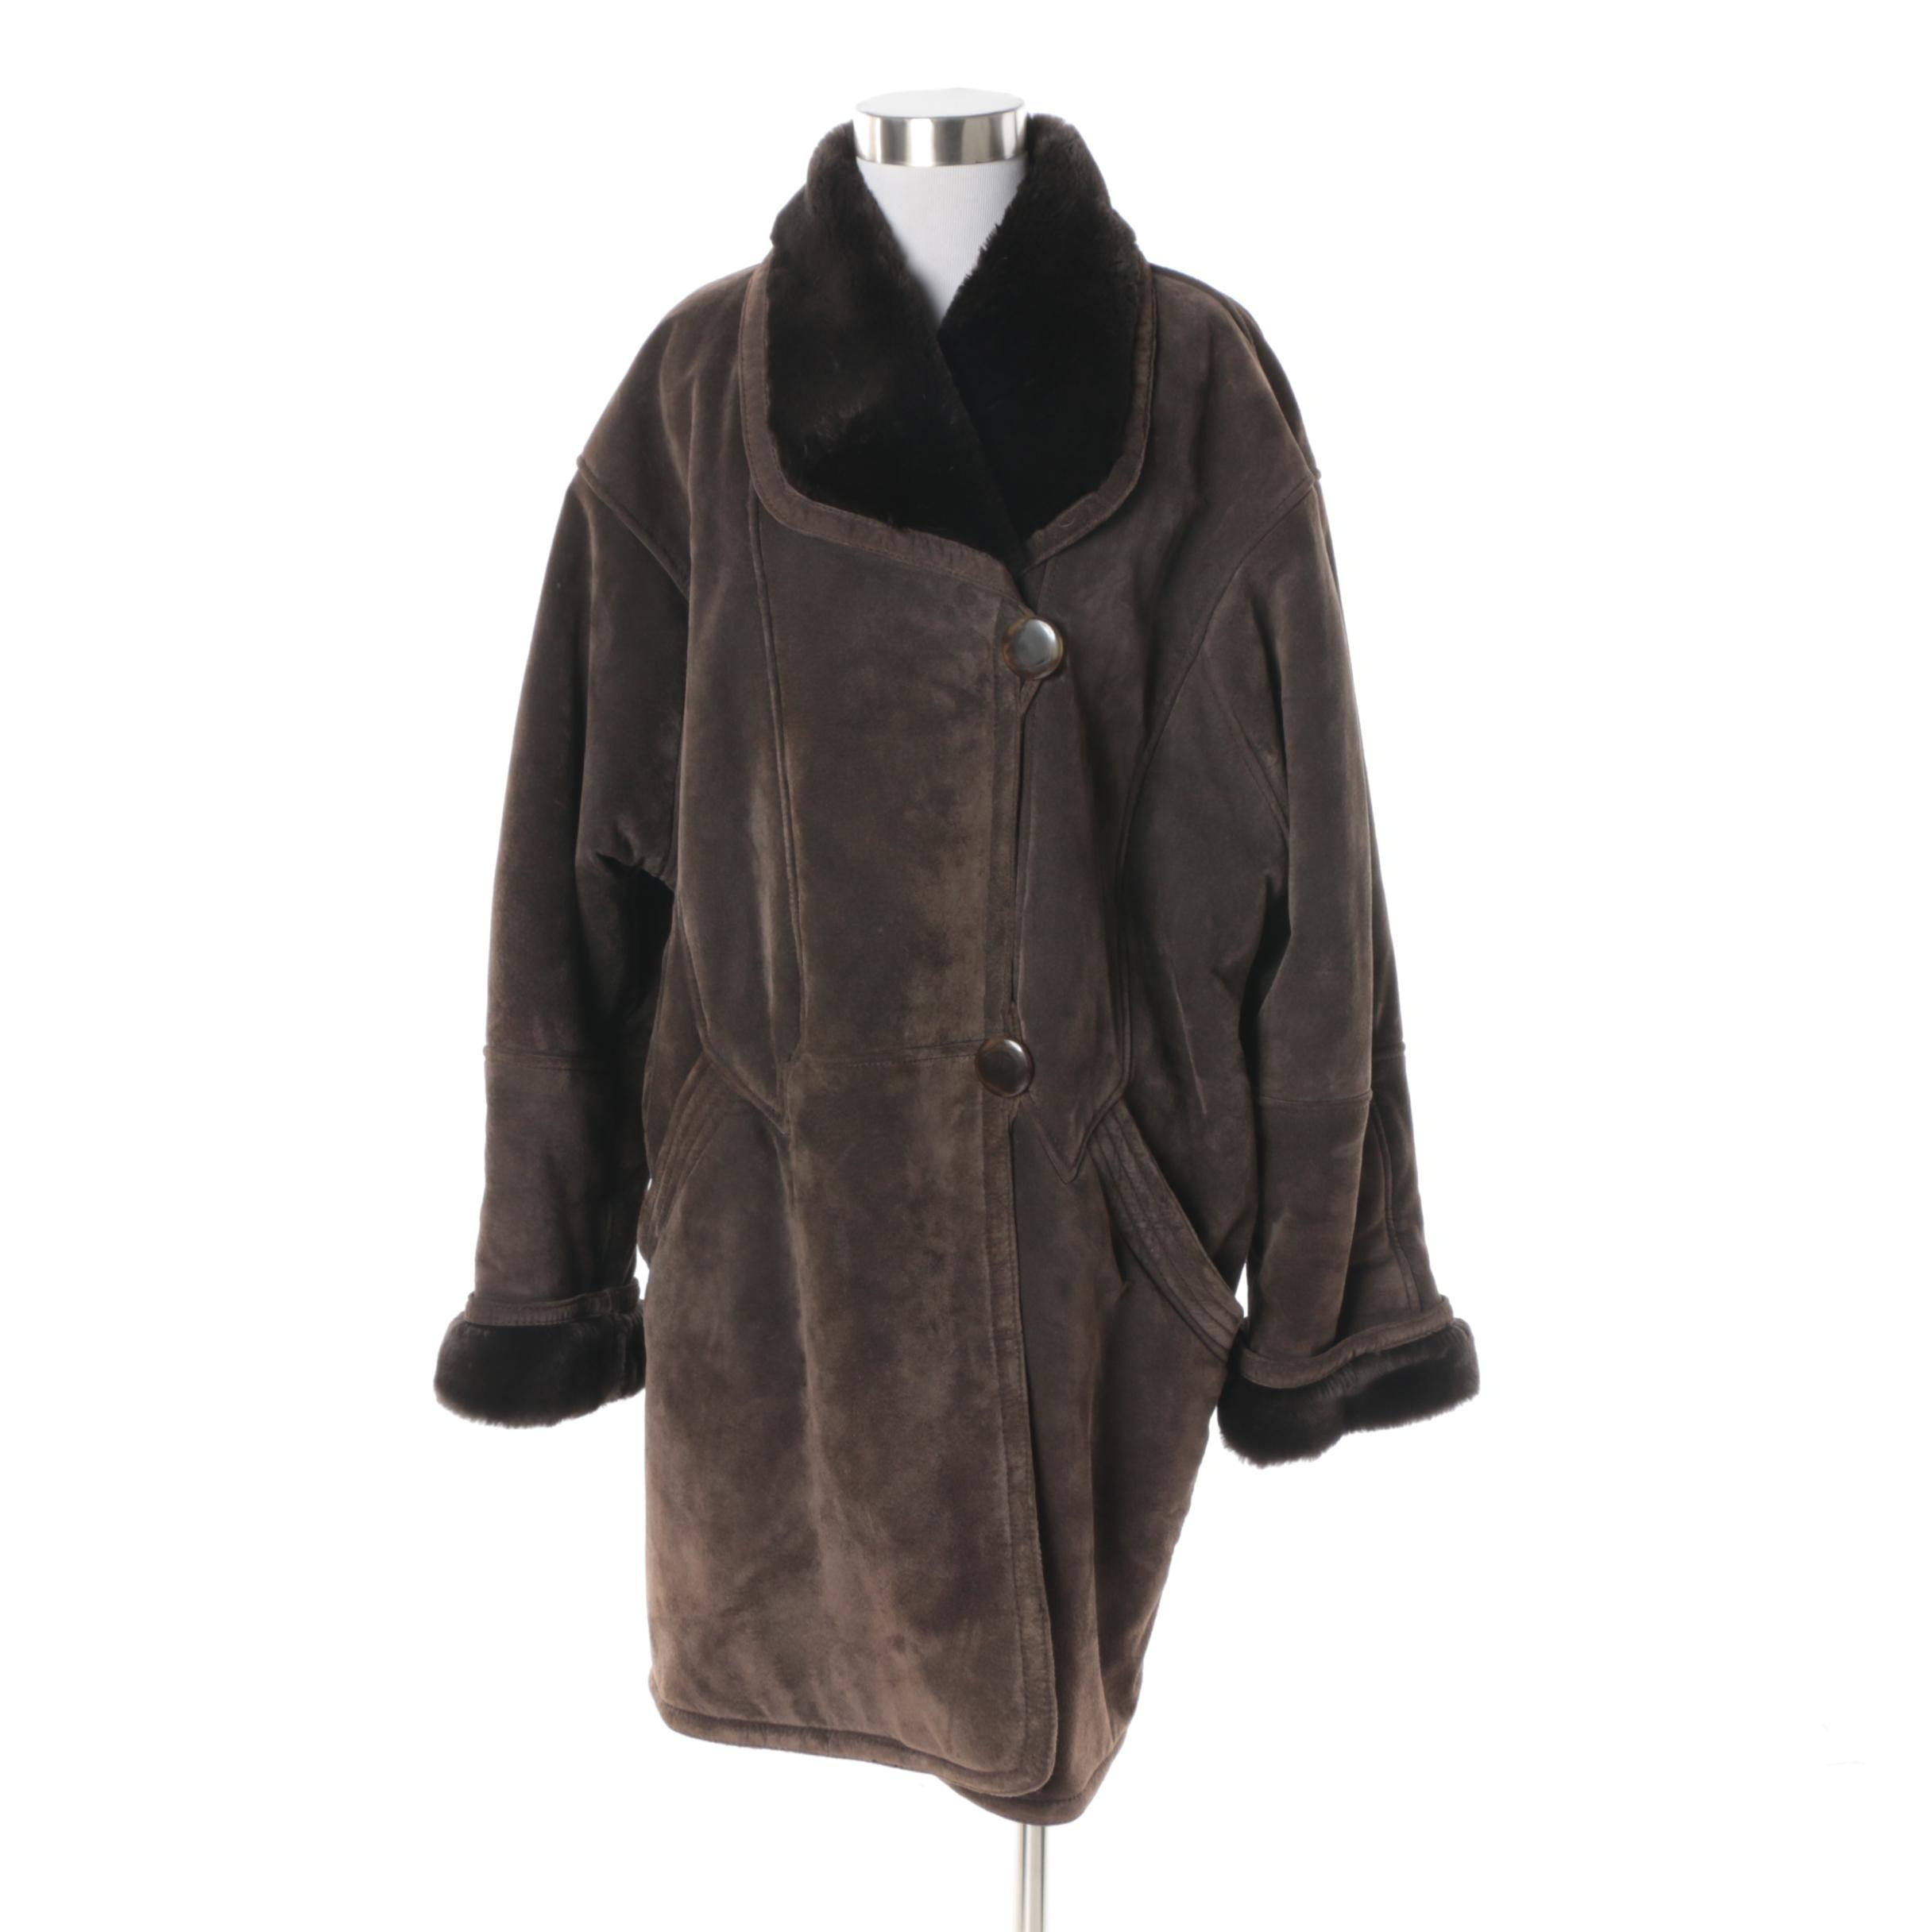 Women's Neiman Marcus Brown Suede Coat with Faux Fur Lining